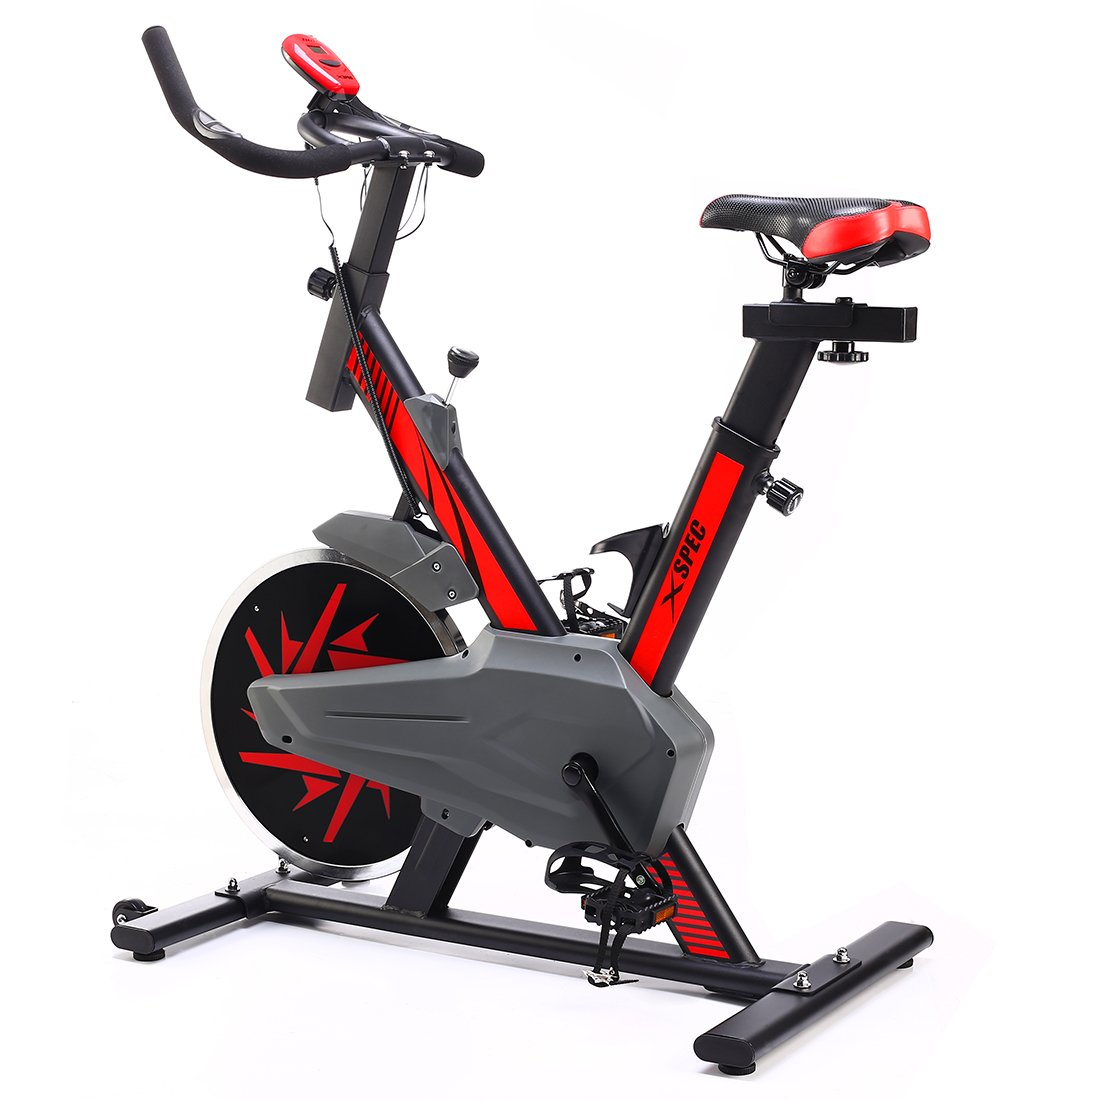 Xspec Pro Stationary Upright Red Exercise Cycling Bike w/ 25 LB Flywheel, Heart Pulse Sensors, Indoor Cardio Fitness Cycling Machine Gym Workout Training Stationary Bike by Xspec (Image #1)